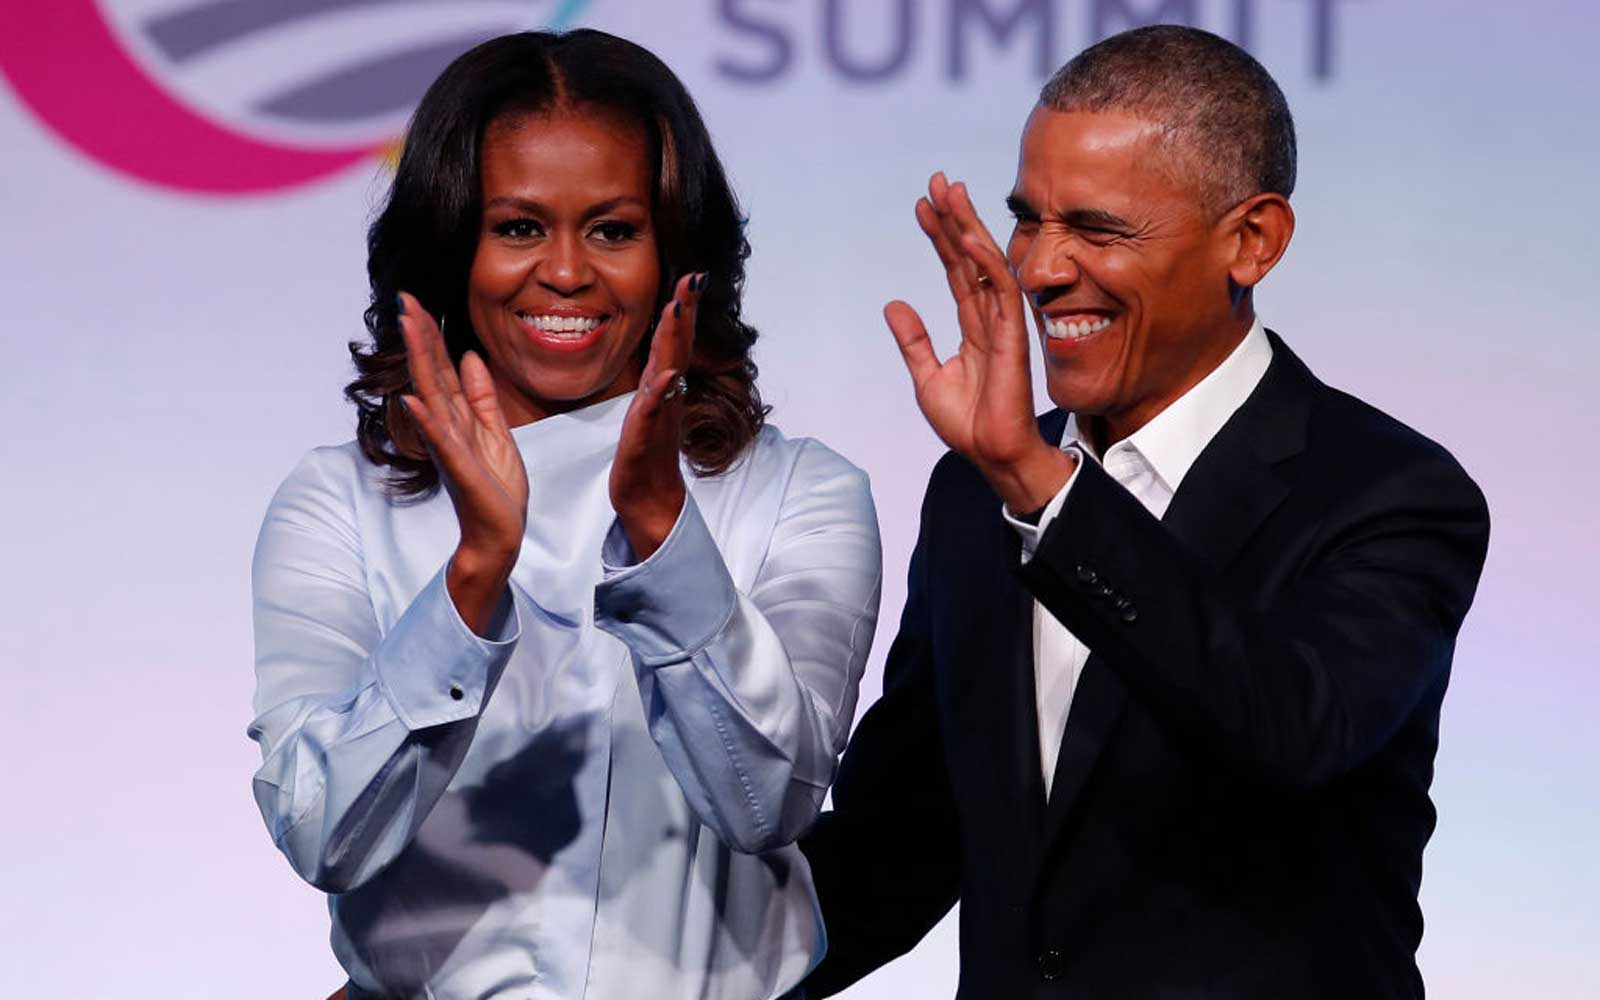 Former US President Barack Obama and his wife Michelle arrive at the Obama Foundation Summit